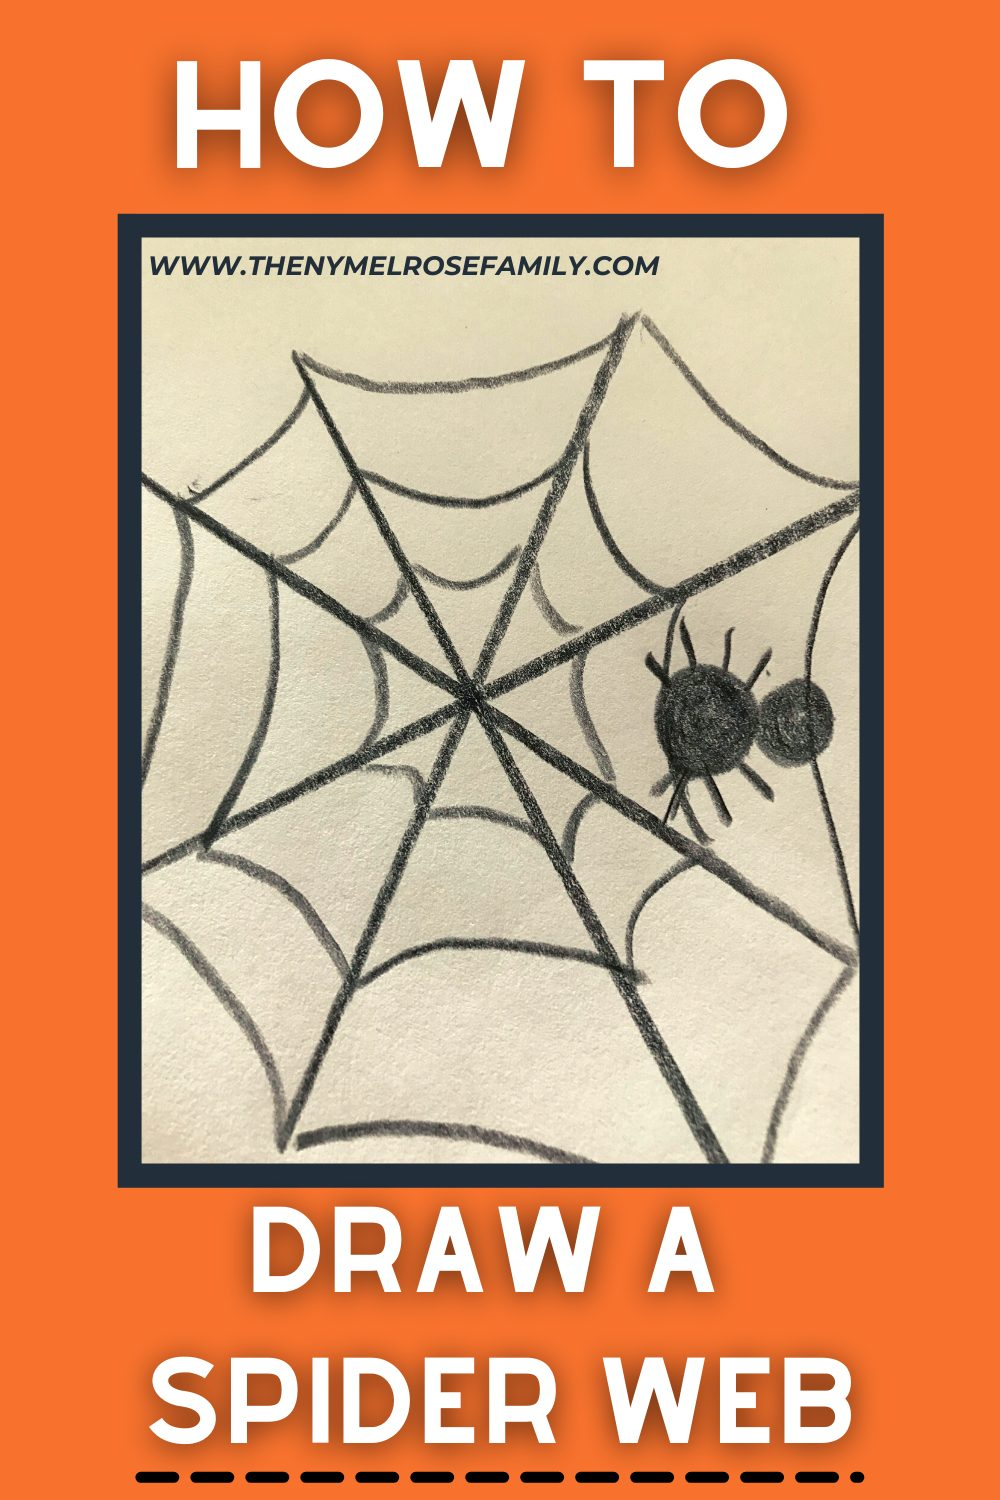 Looking for an easy way to learn how to draw a spider web? Look no more. This guide will help you to learn how to draw a spider web using basic supplies and add an amazing spooky piece to your art projects. #spiderwebart #spiderwebwithspider #kidscrafts #crafts #nymelrosefamily via @jennymelrose